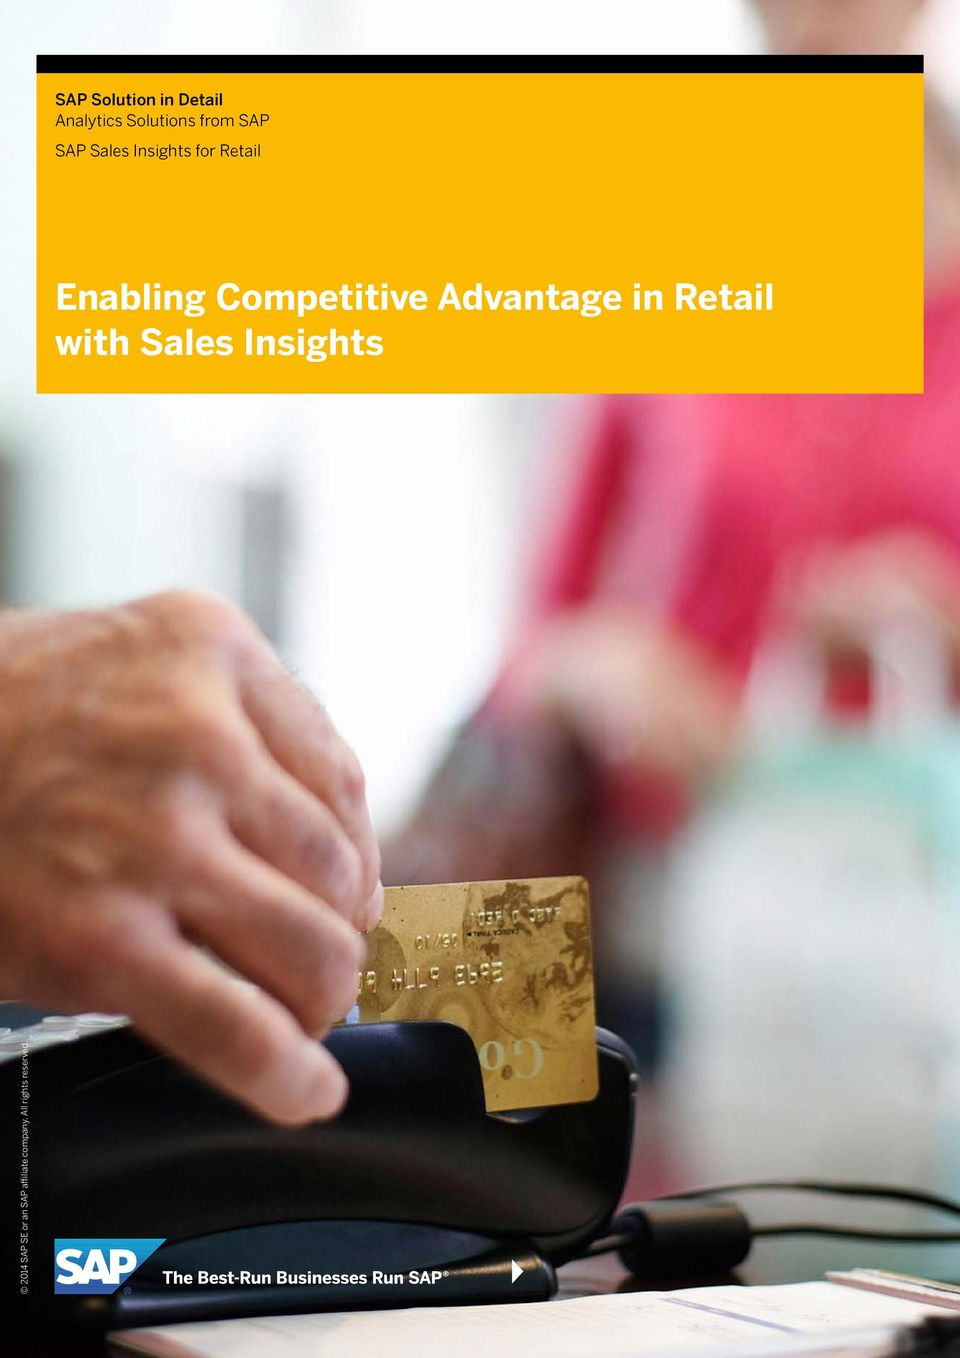 Insights for Retail Enabling